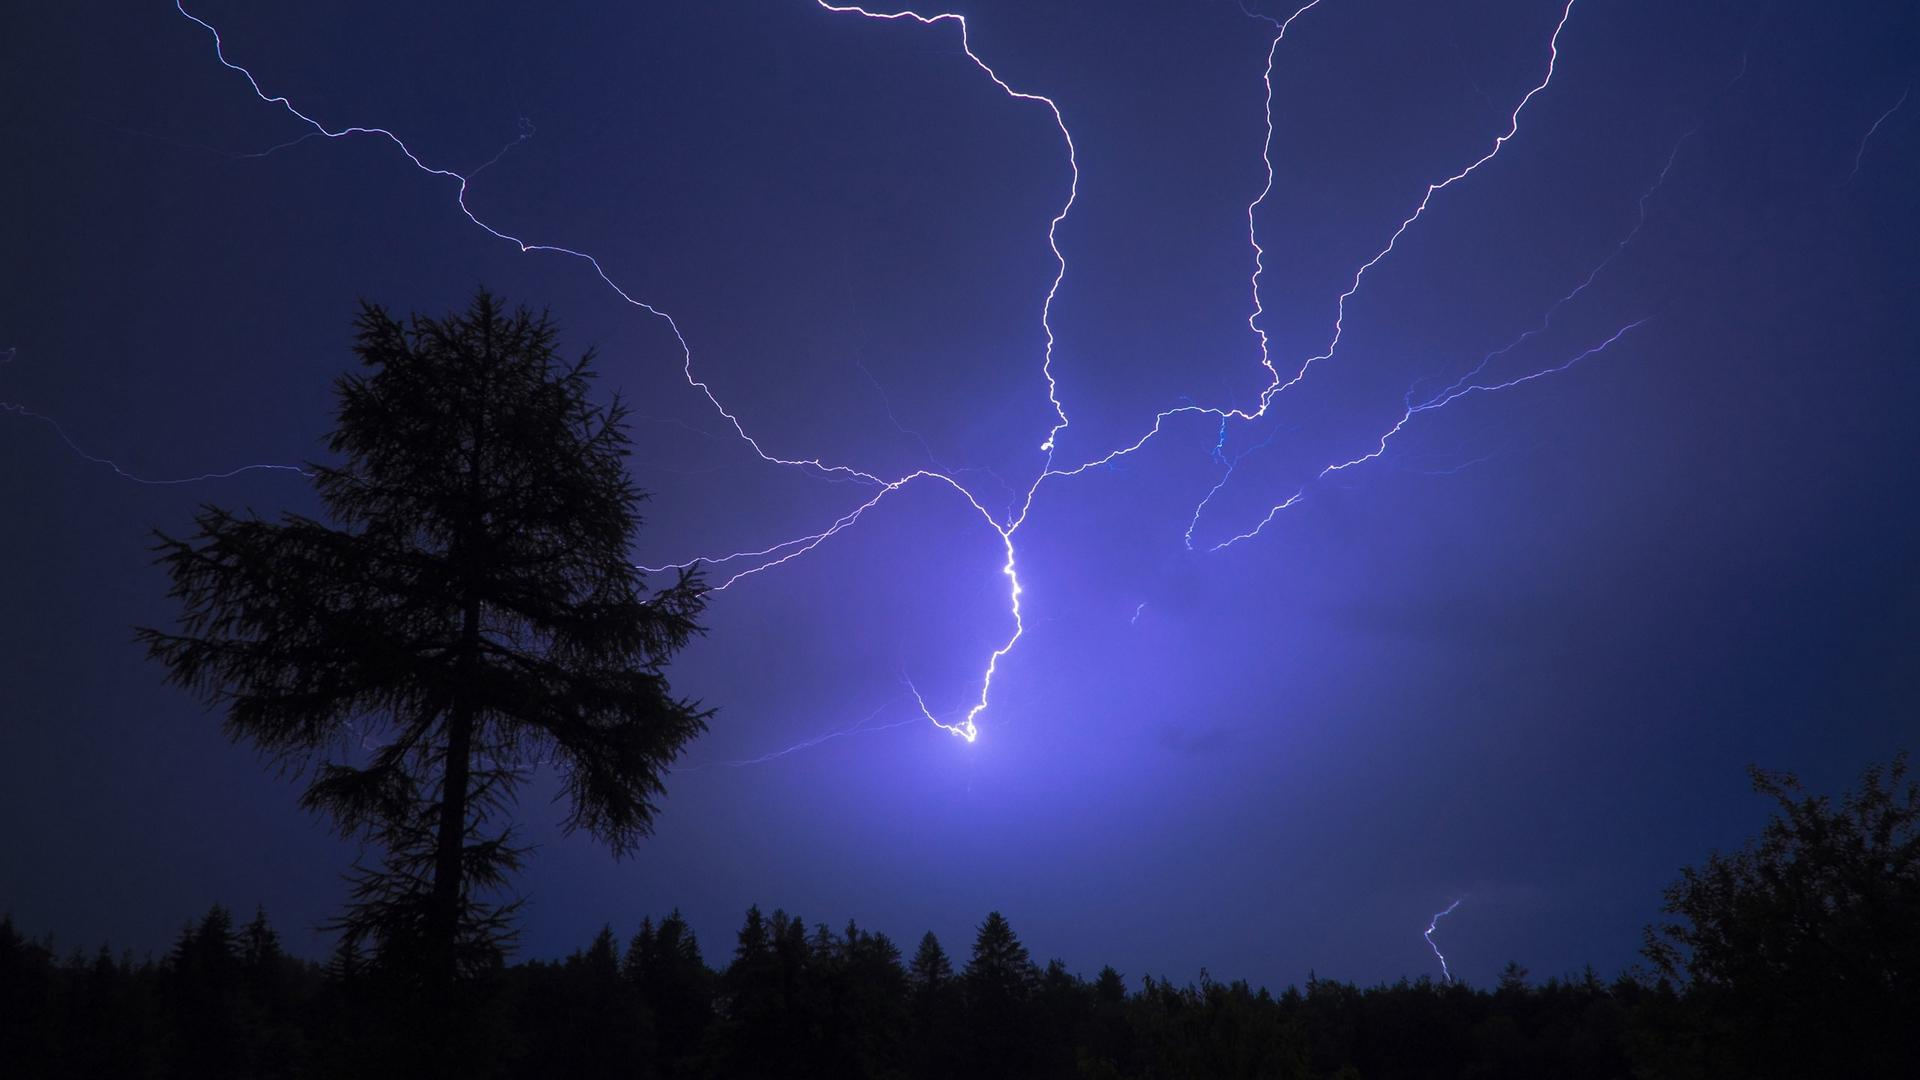 Download wallpapers 1920x1080 sky, thunder, storm, tree full hd, hdtv